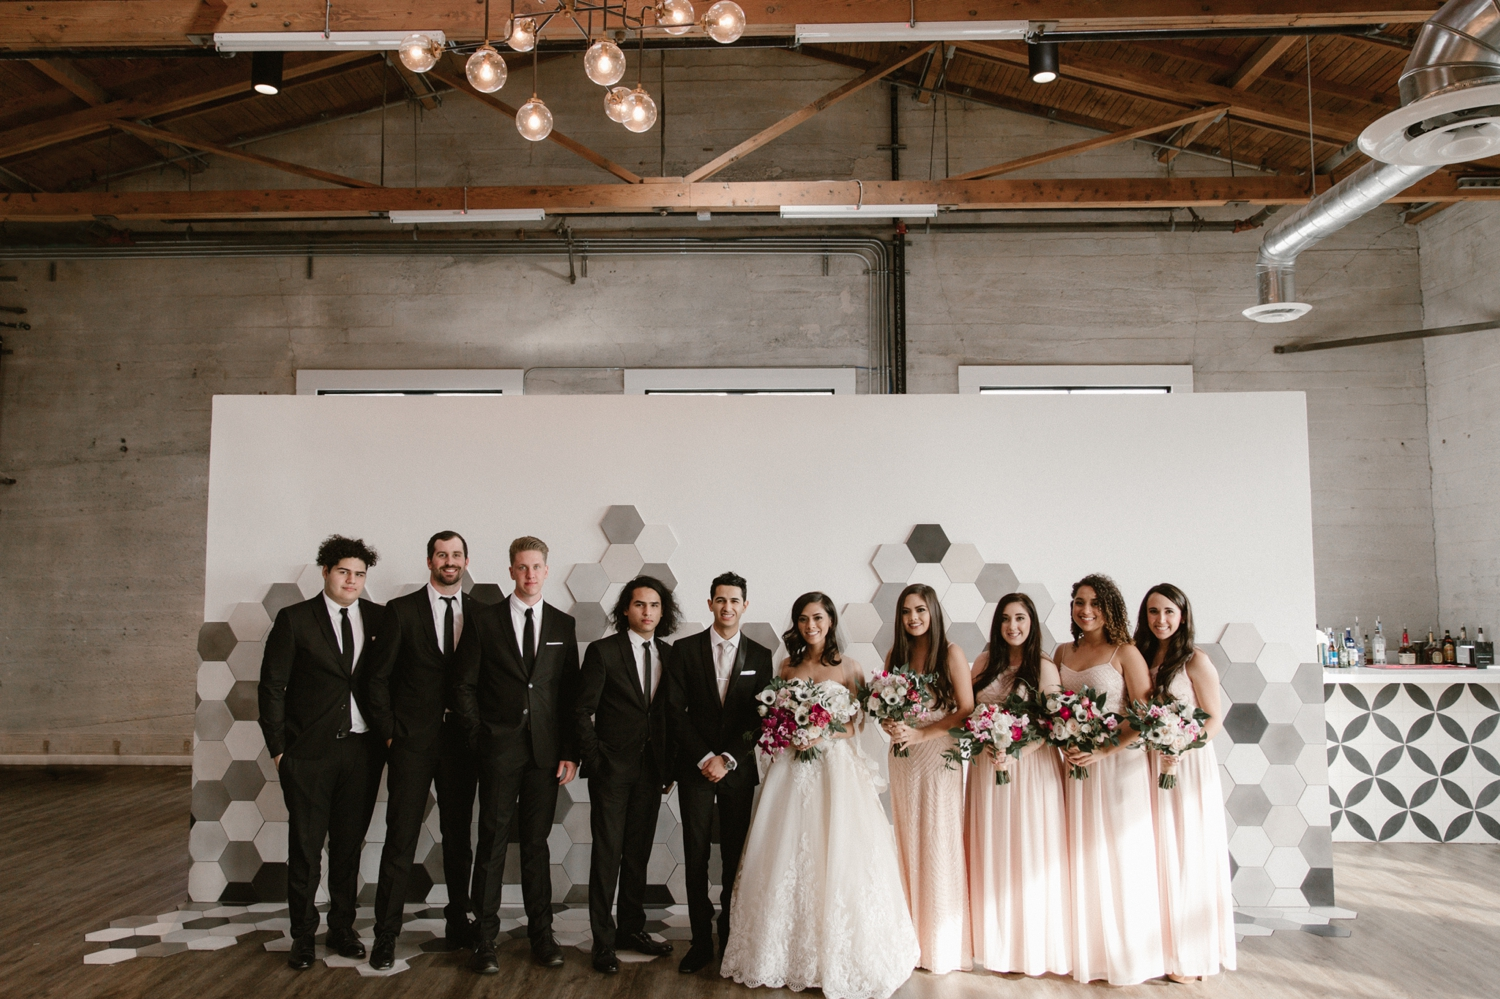 Wedding party at the 1912 wedding in Santa Ana by Paige Nelson